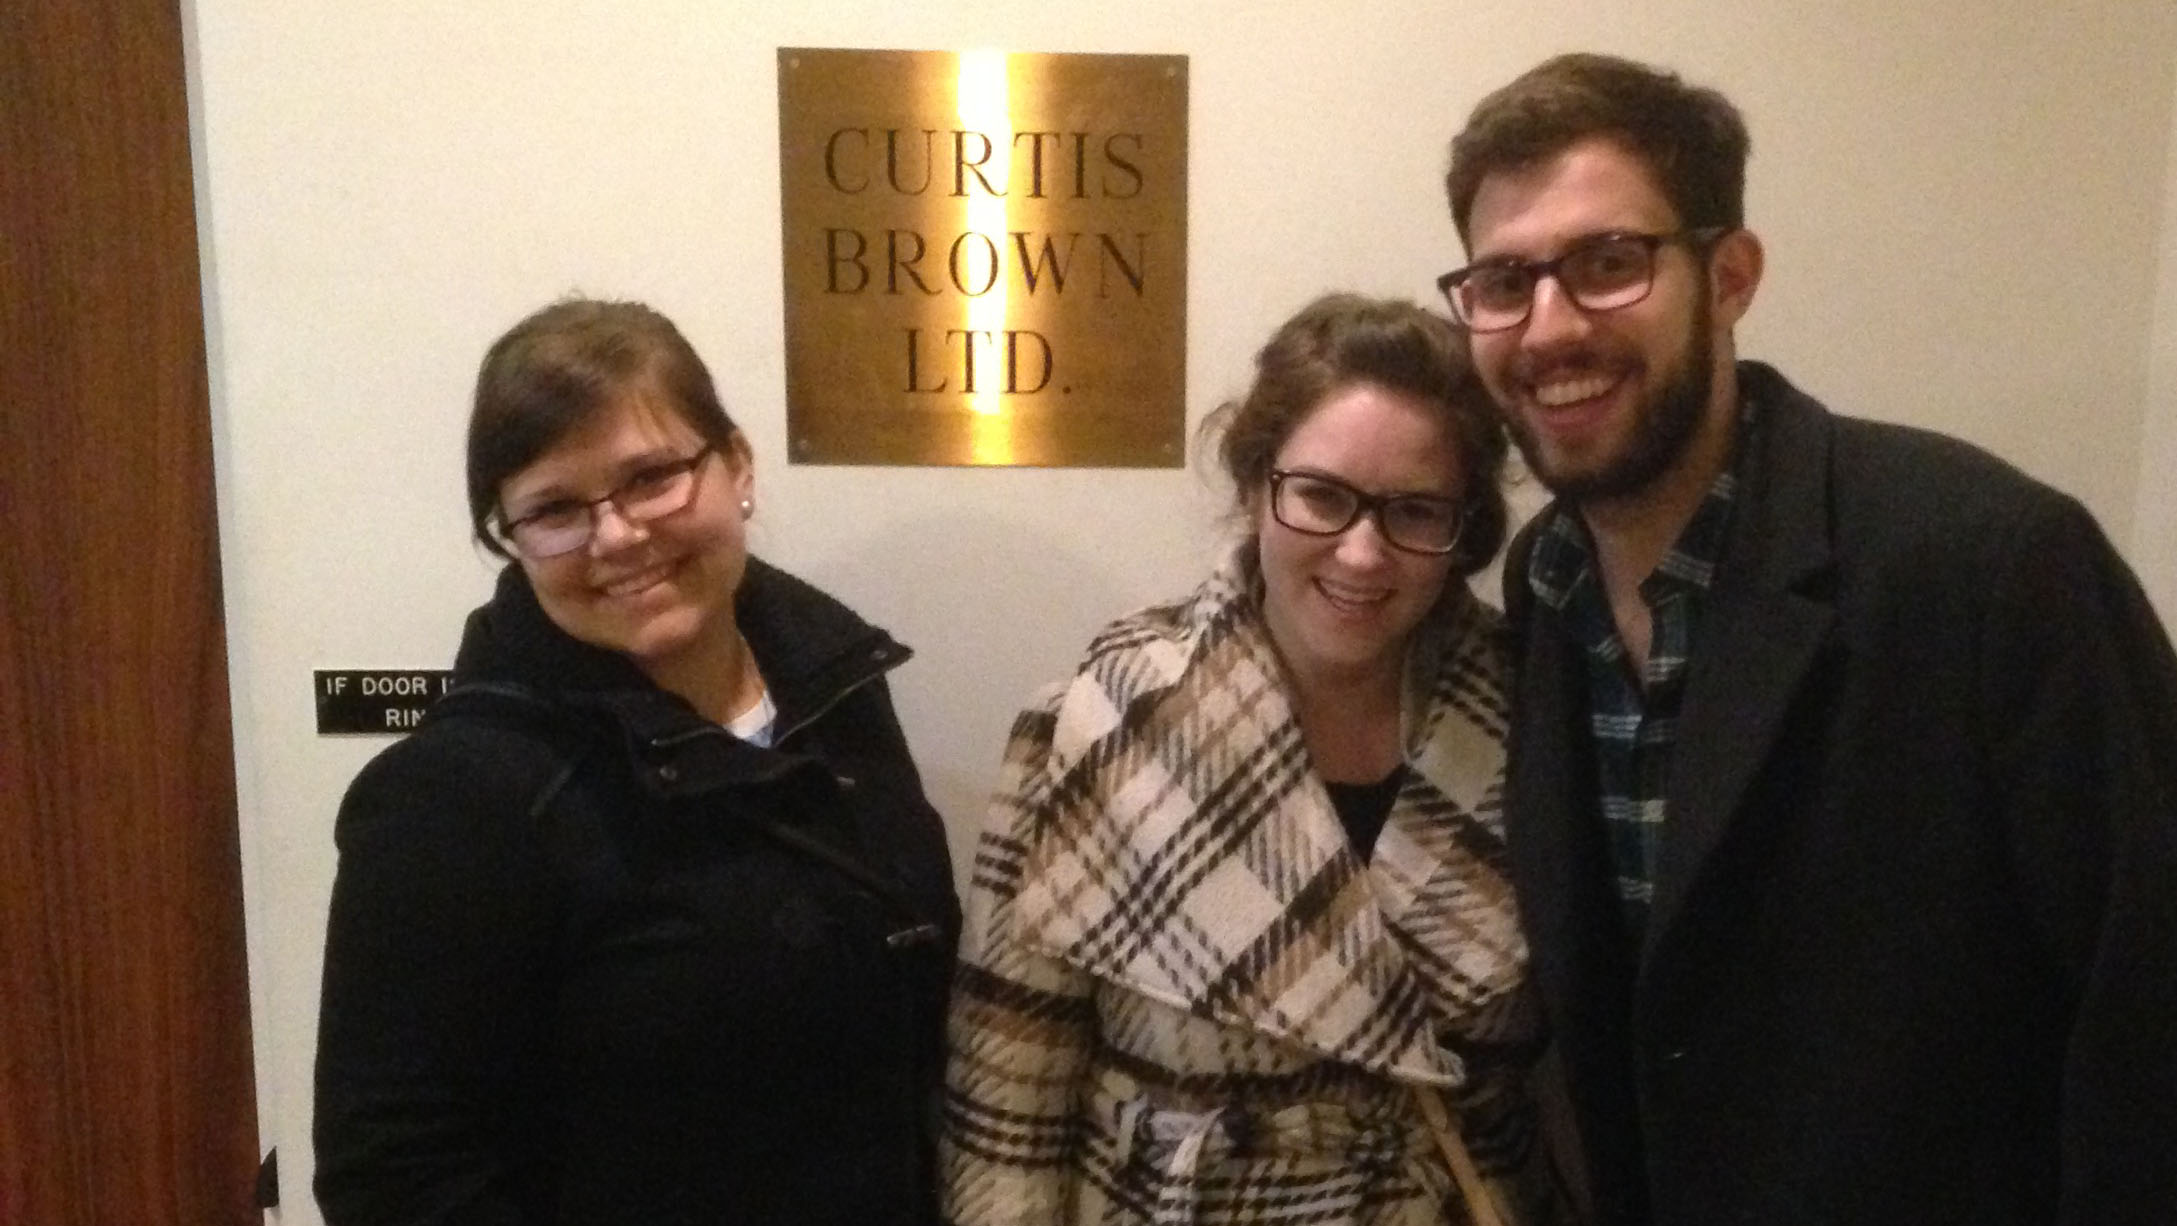 Three UNL undergraduates pose outside the Curtis Brown Ltd. offices in New York City